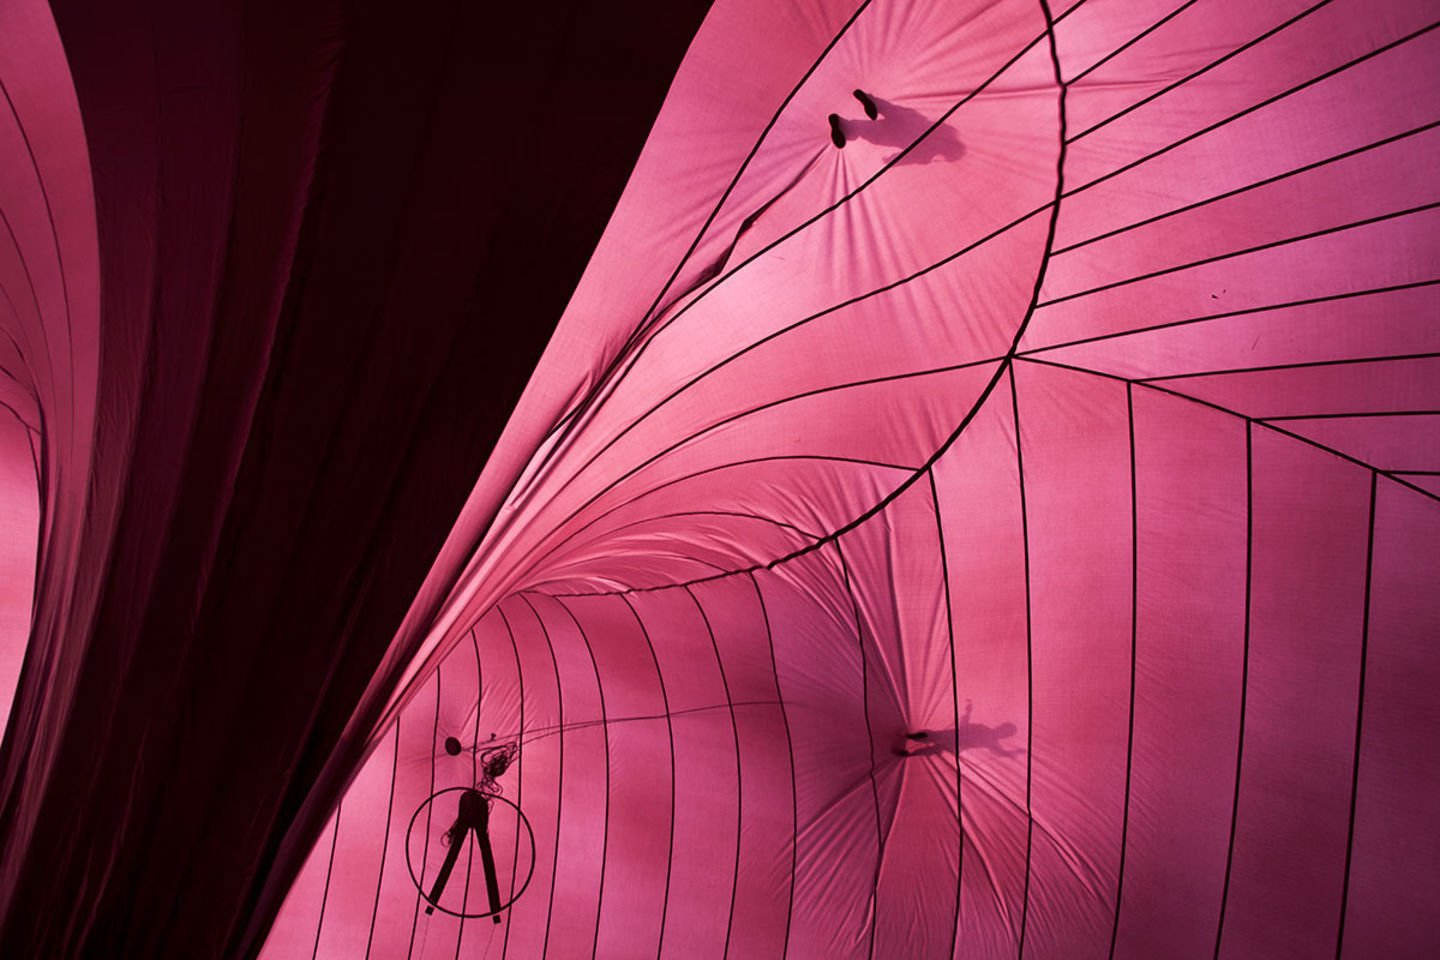 Ark Nova inflatable concert hall | Anish Kapoor & Arata Isozaki  Pneumatic Design by Chris Deam